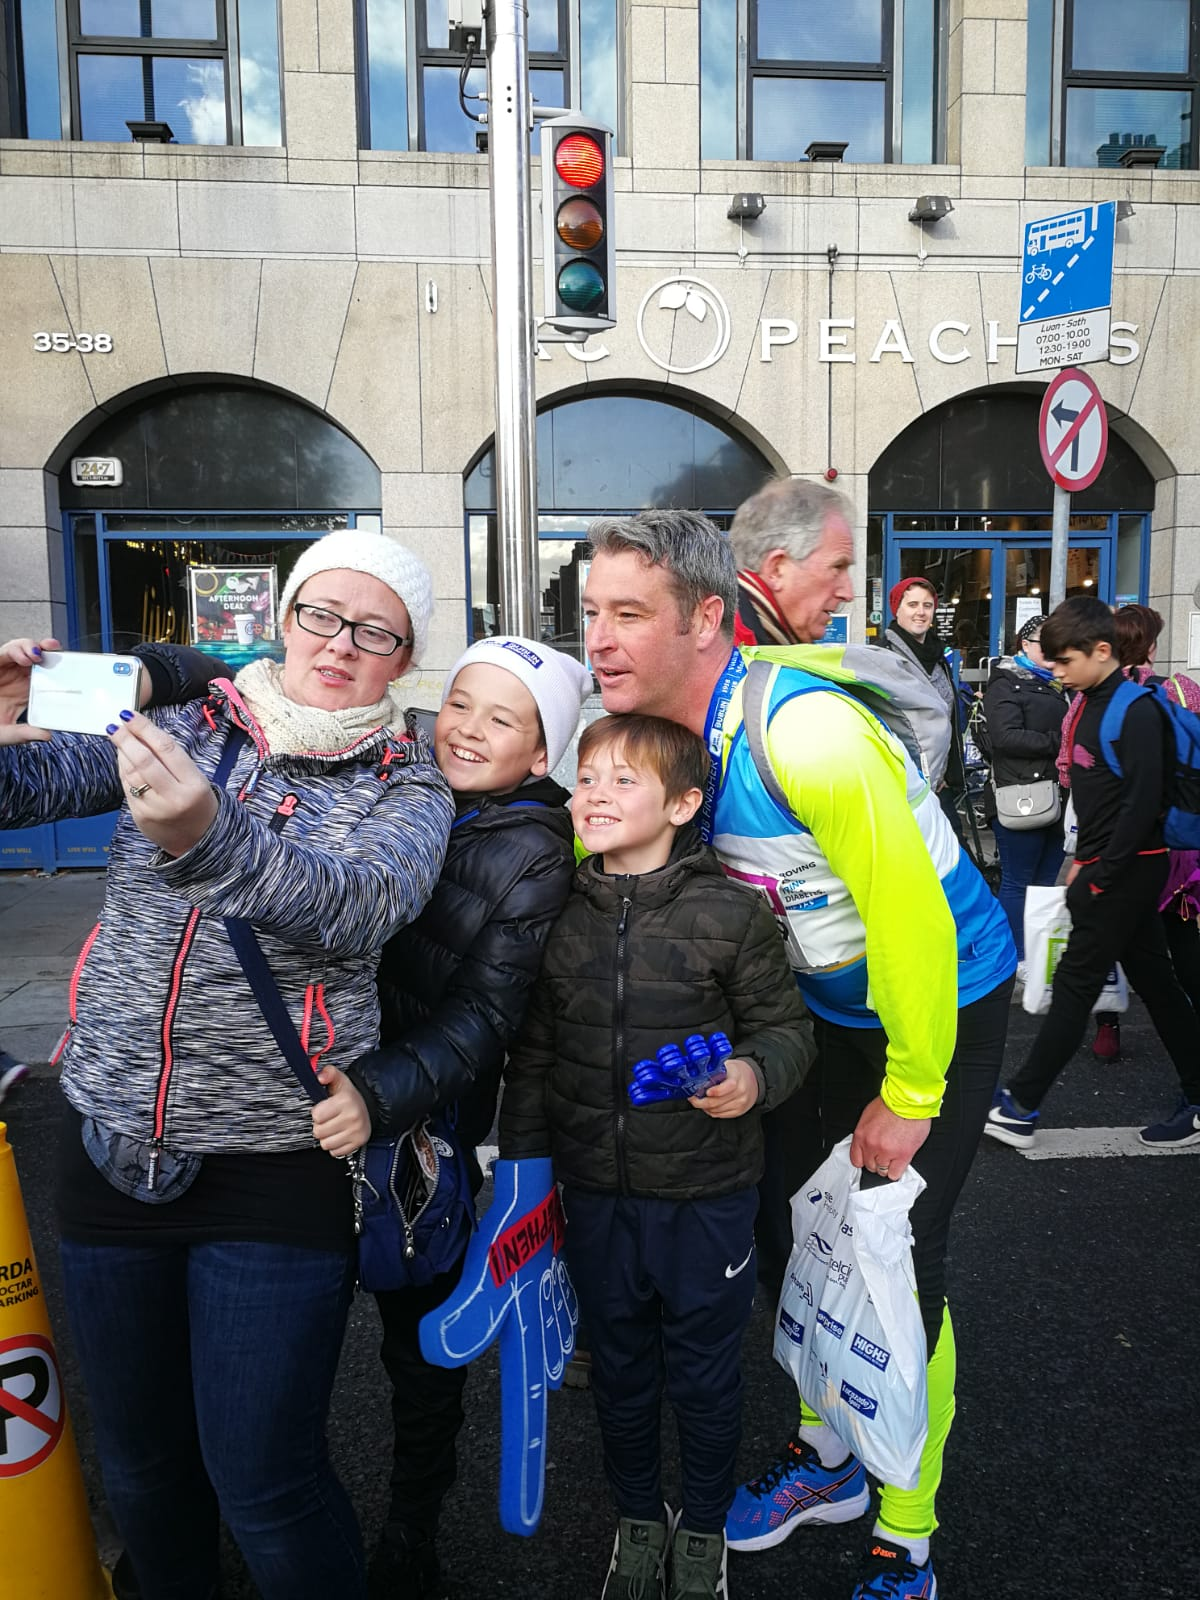 Above: Stephen with his wife and fellow agent Gillian and their children just after he had finished a marathon.